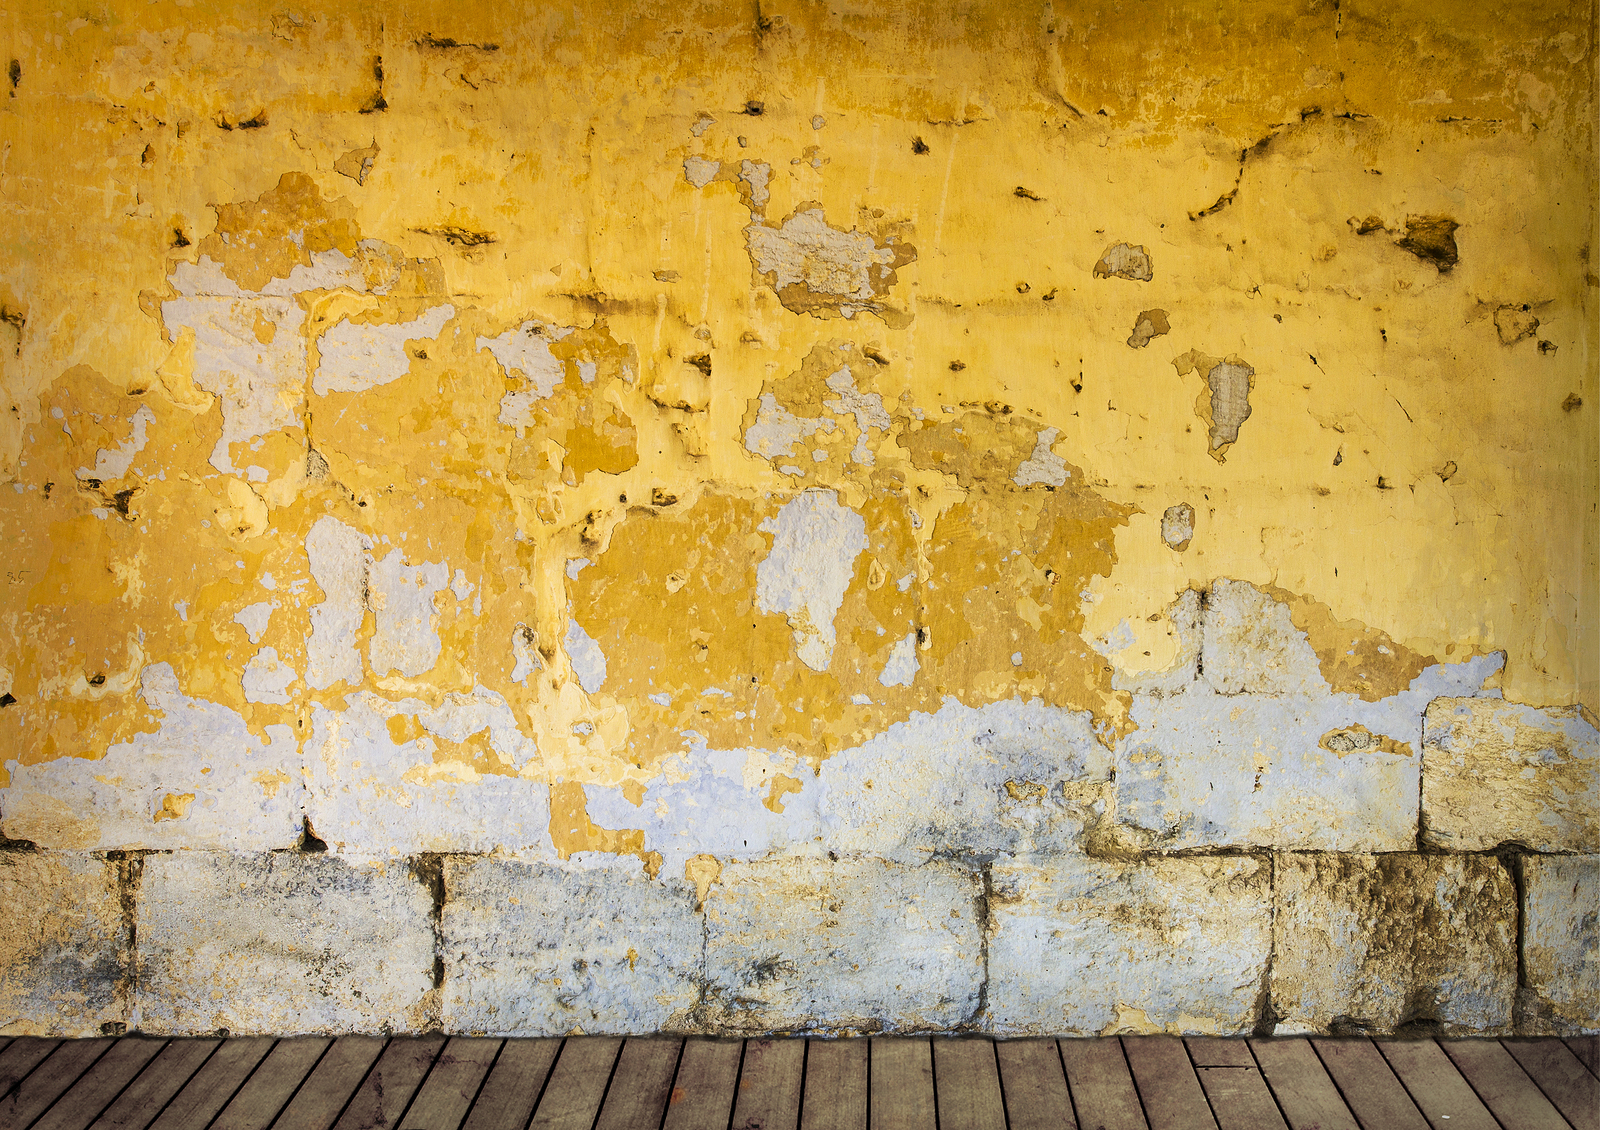 bigstock-Rough-wall-with-peeling-yellow-73989739